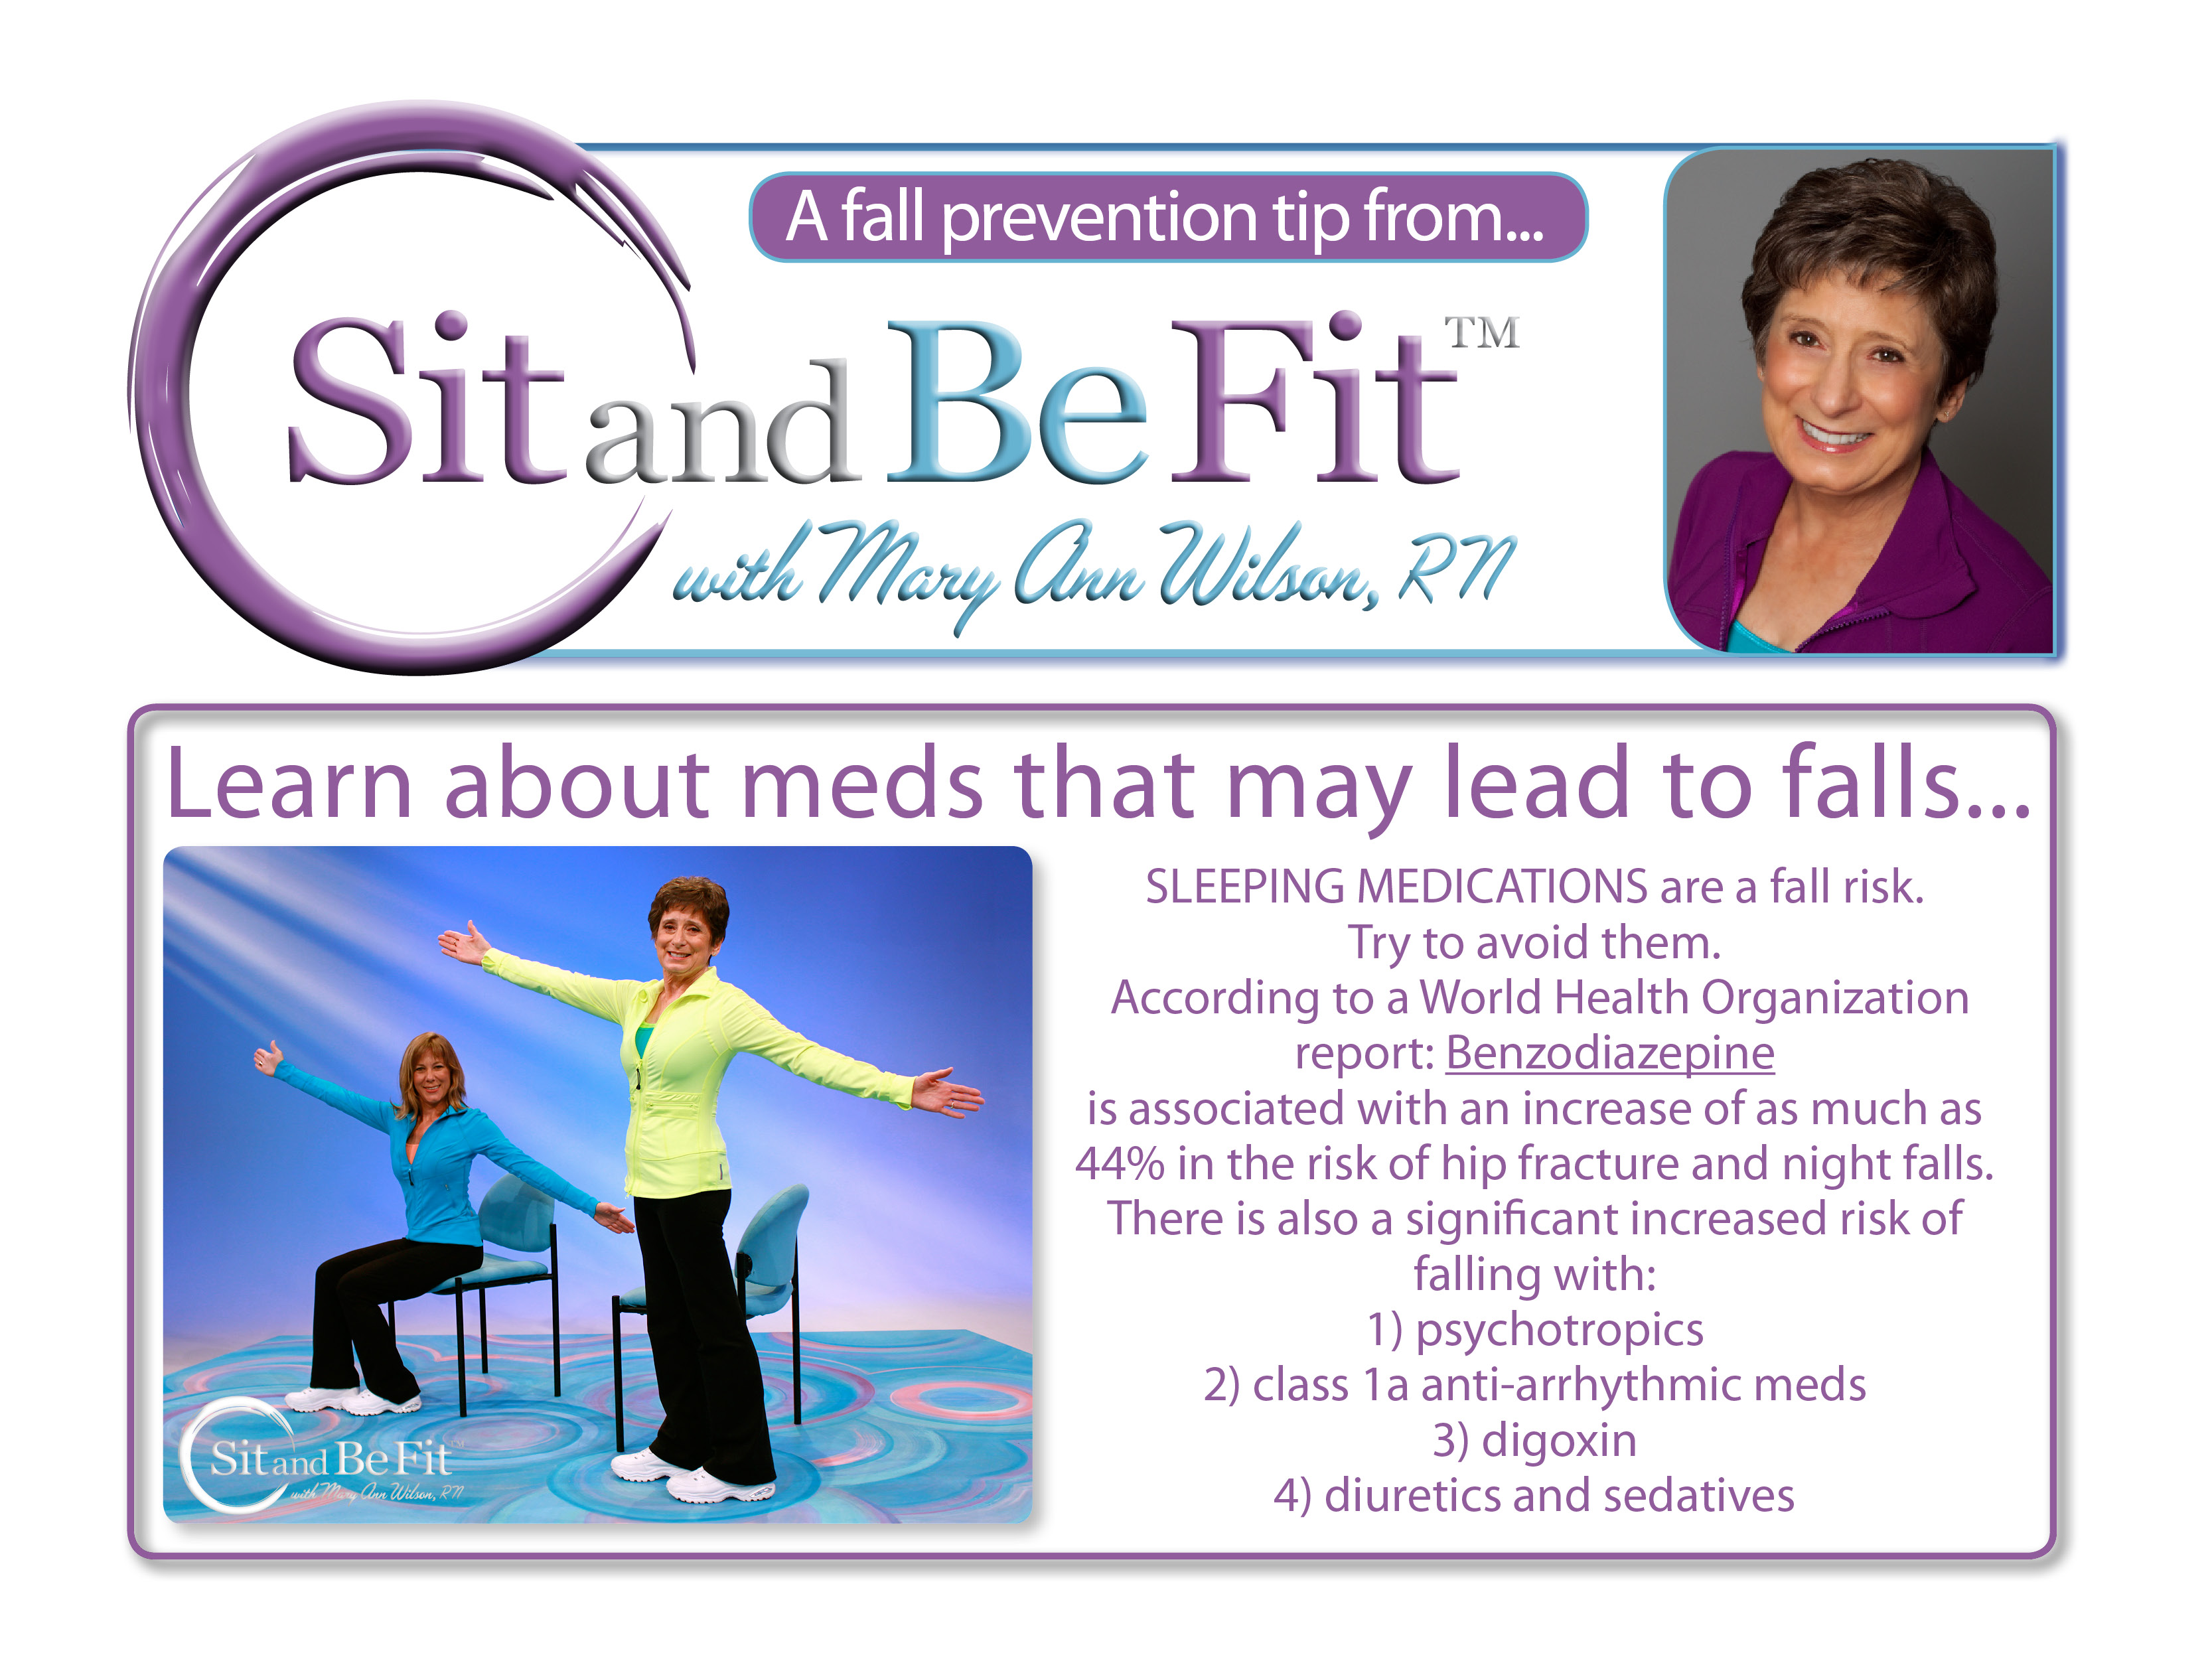 A fall prevention tip from Sit and Be Fit TV host, Mary Ann Wilson, RN.